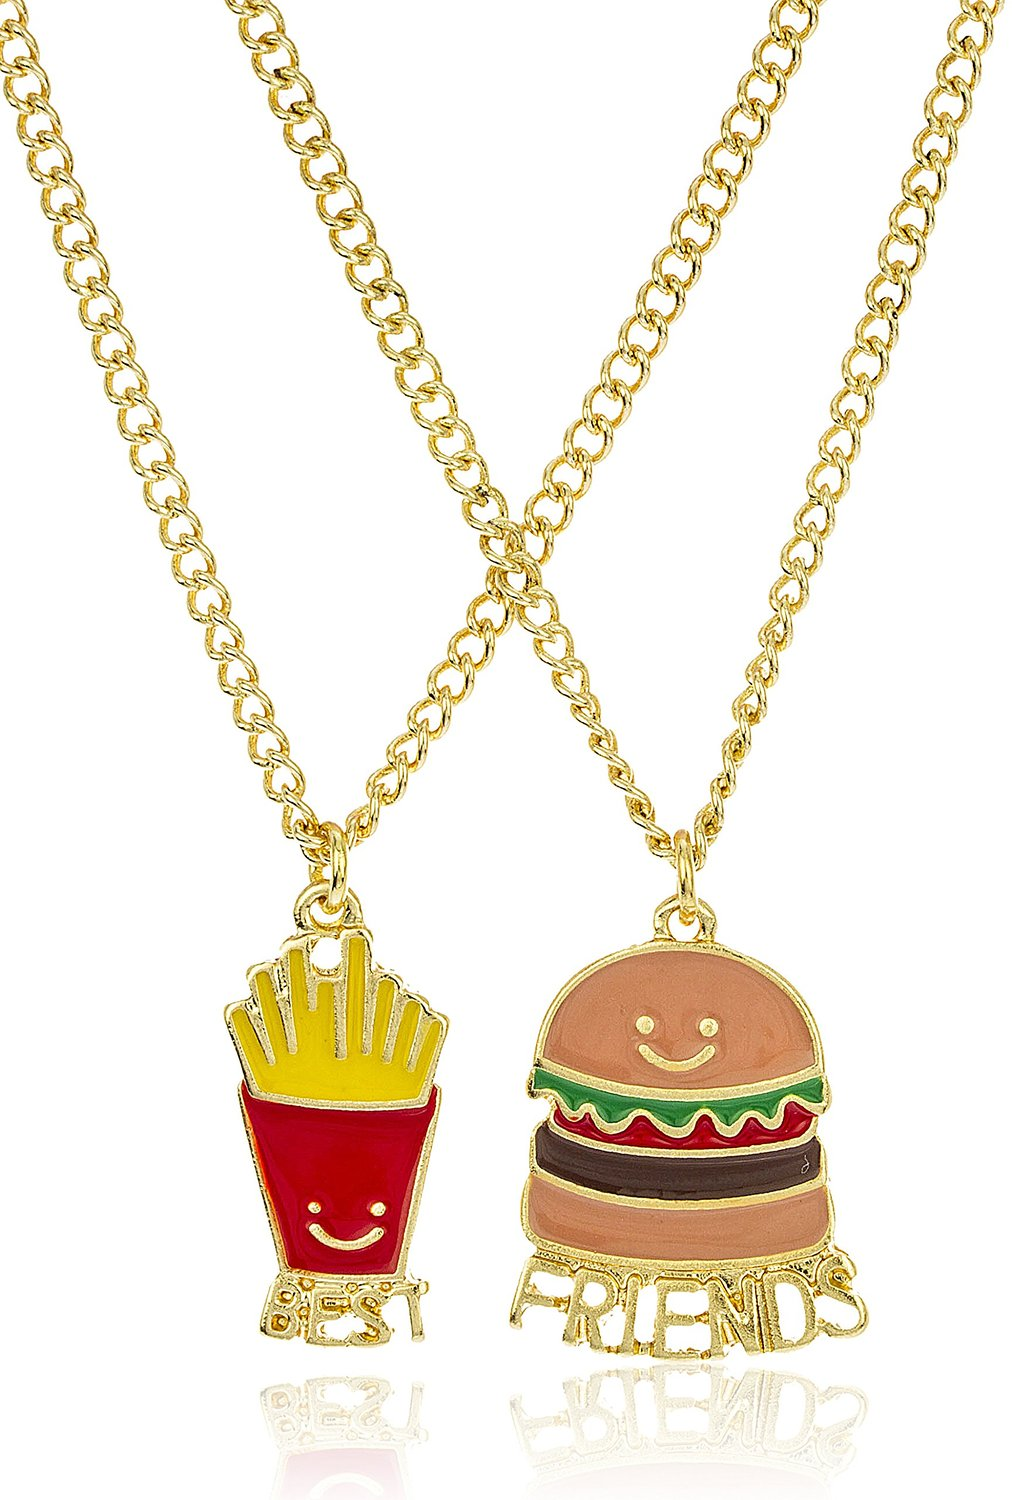 Ideal Burger People Who Love Food Burger Fries Friend Necklaces 3 Friends Necklace Amazon Fries Friend Necklaces Foodies Friends Necklace bark post Best Friends Necklace